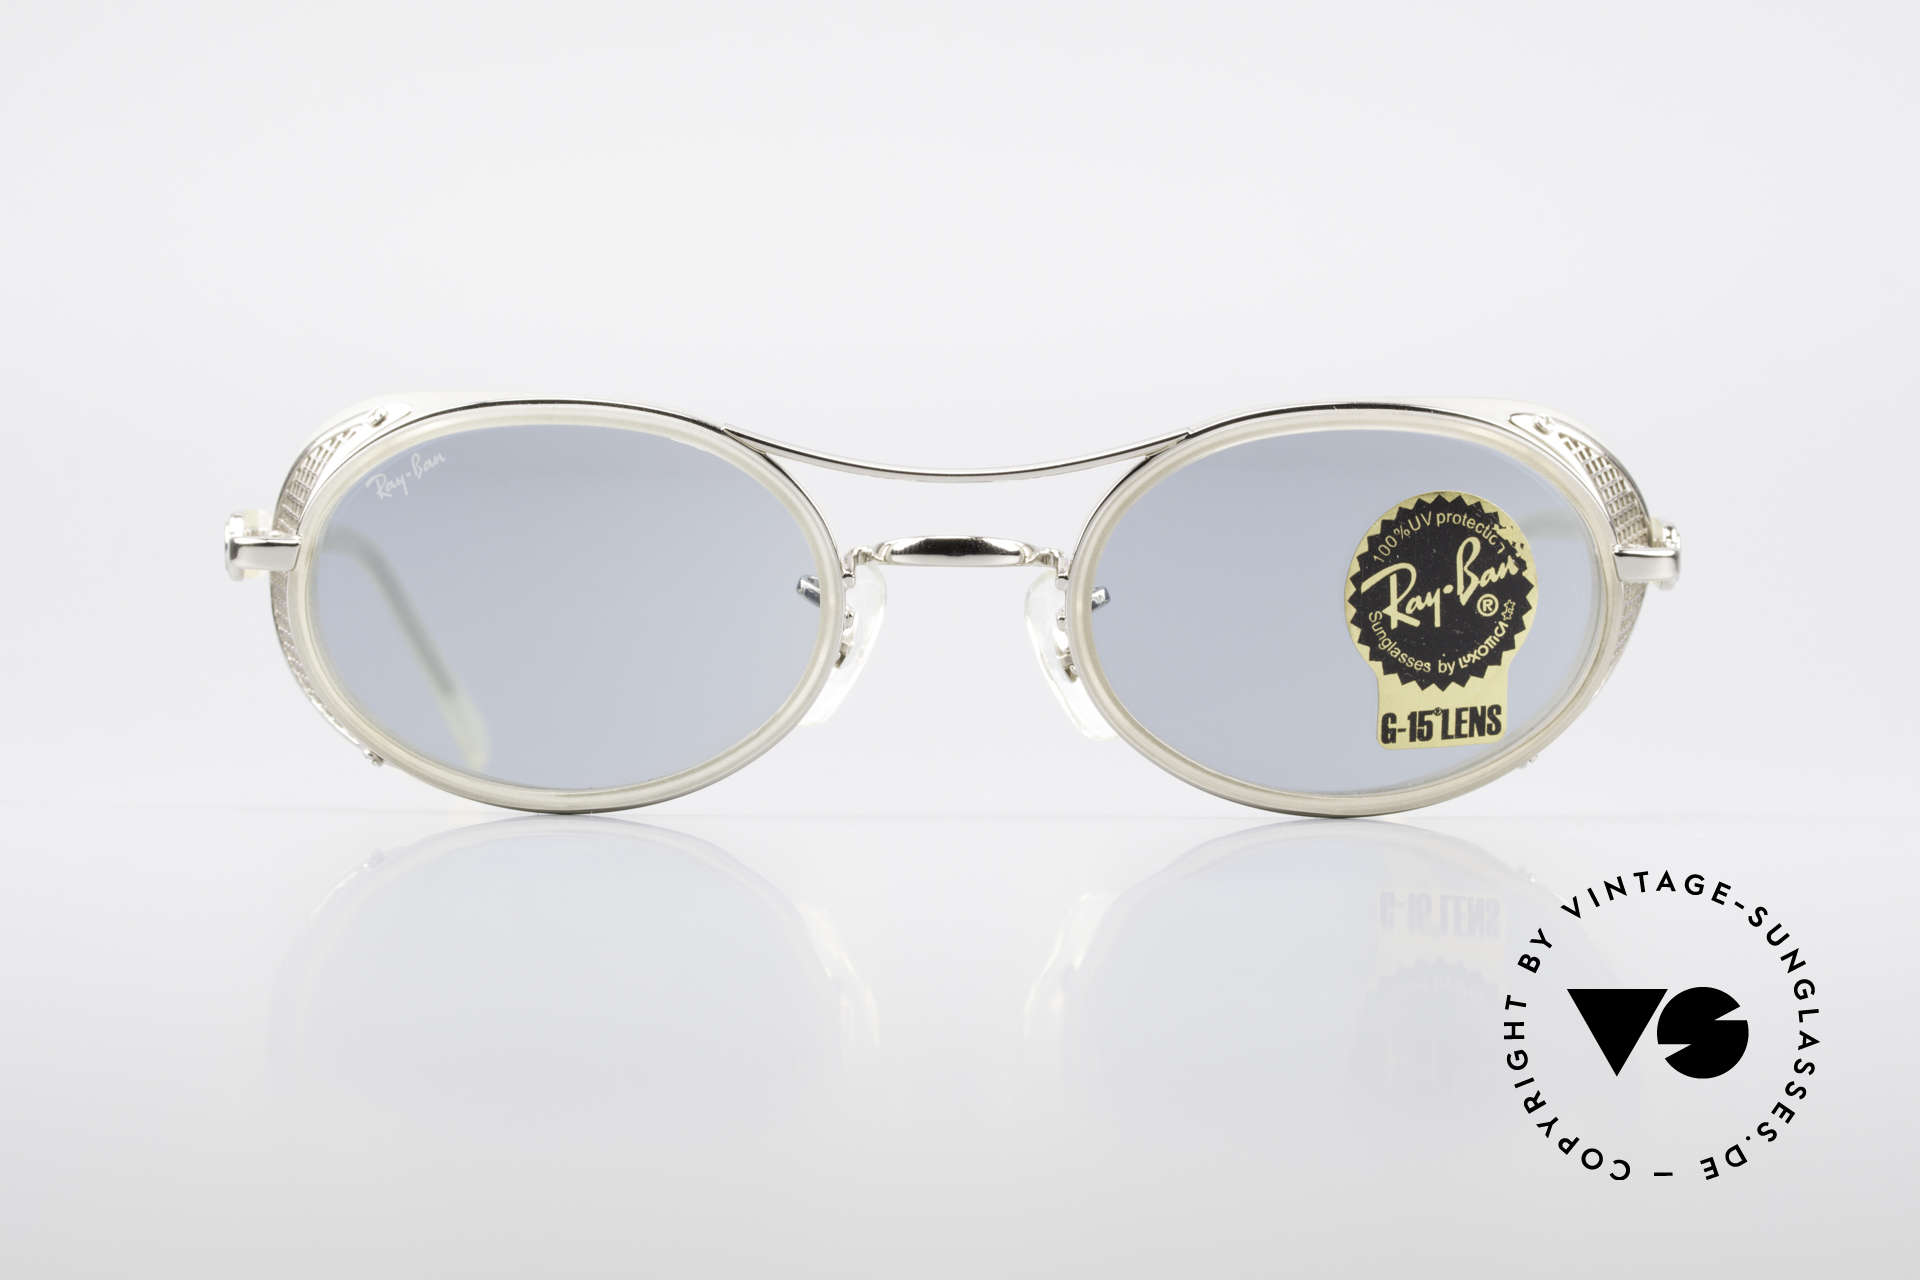 Ray Ban Chaos RB3140 Steampunk Industrial Shades, HYBRID model from 1999 (when Luxottica bought B&L), Made for Men and Women